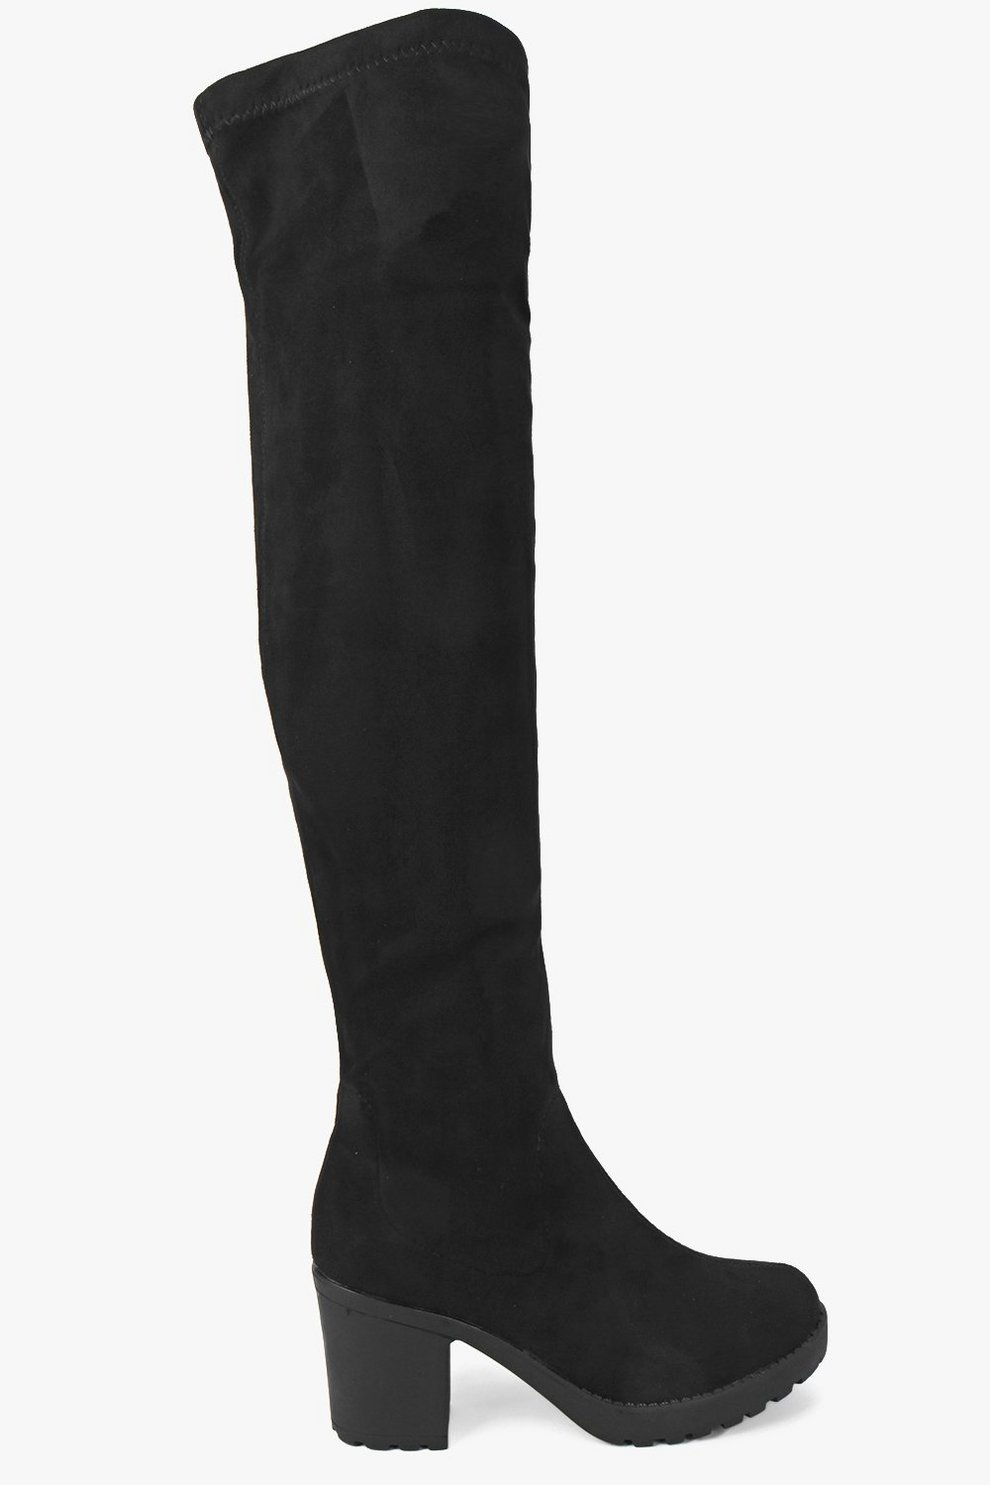 8c320ebe545b Stretch Over Knee Cleated Boots